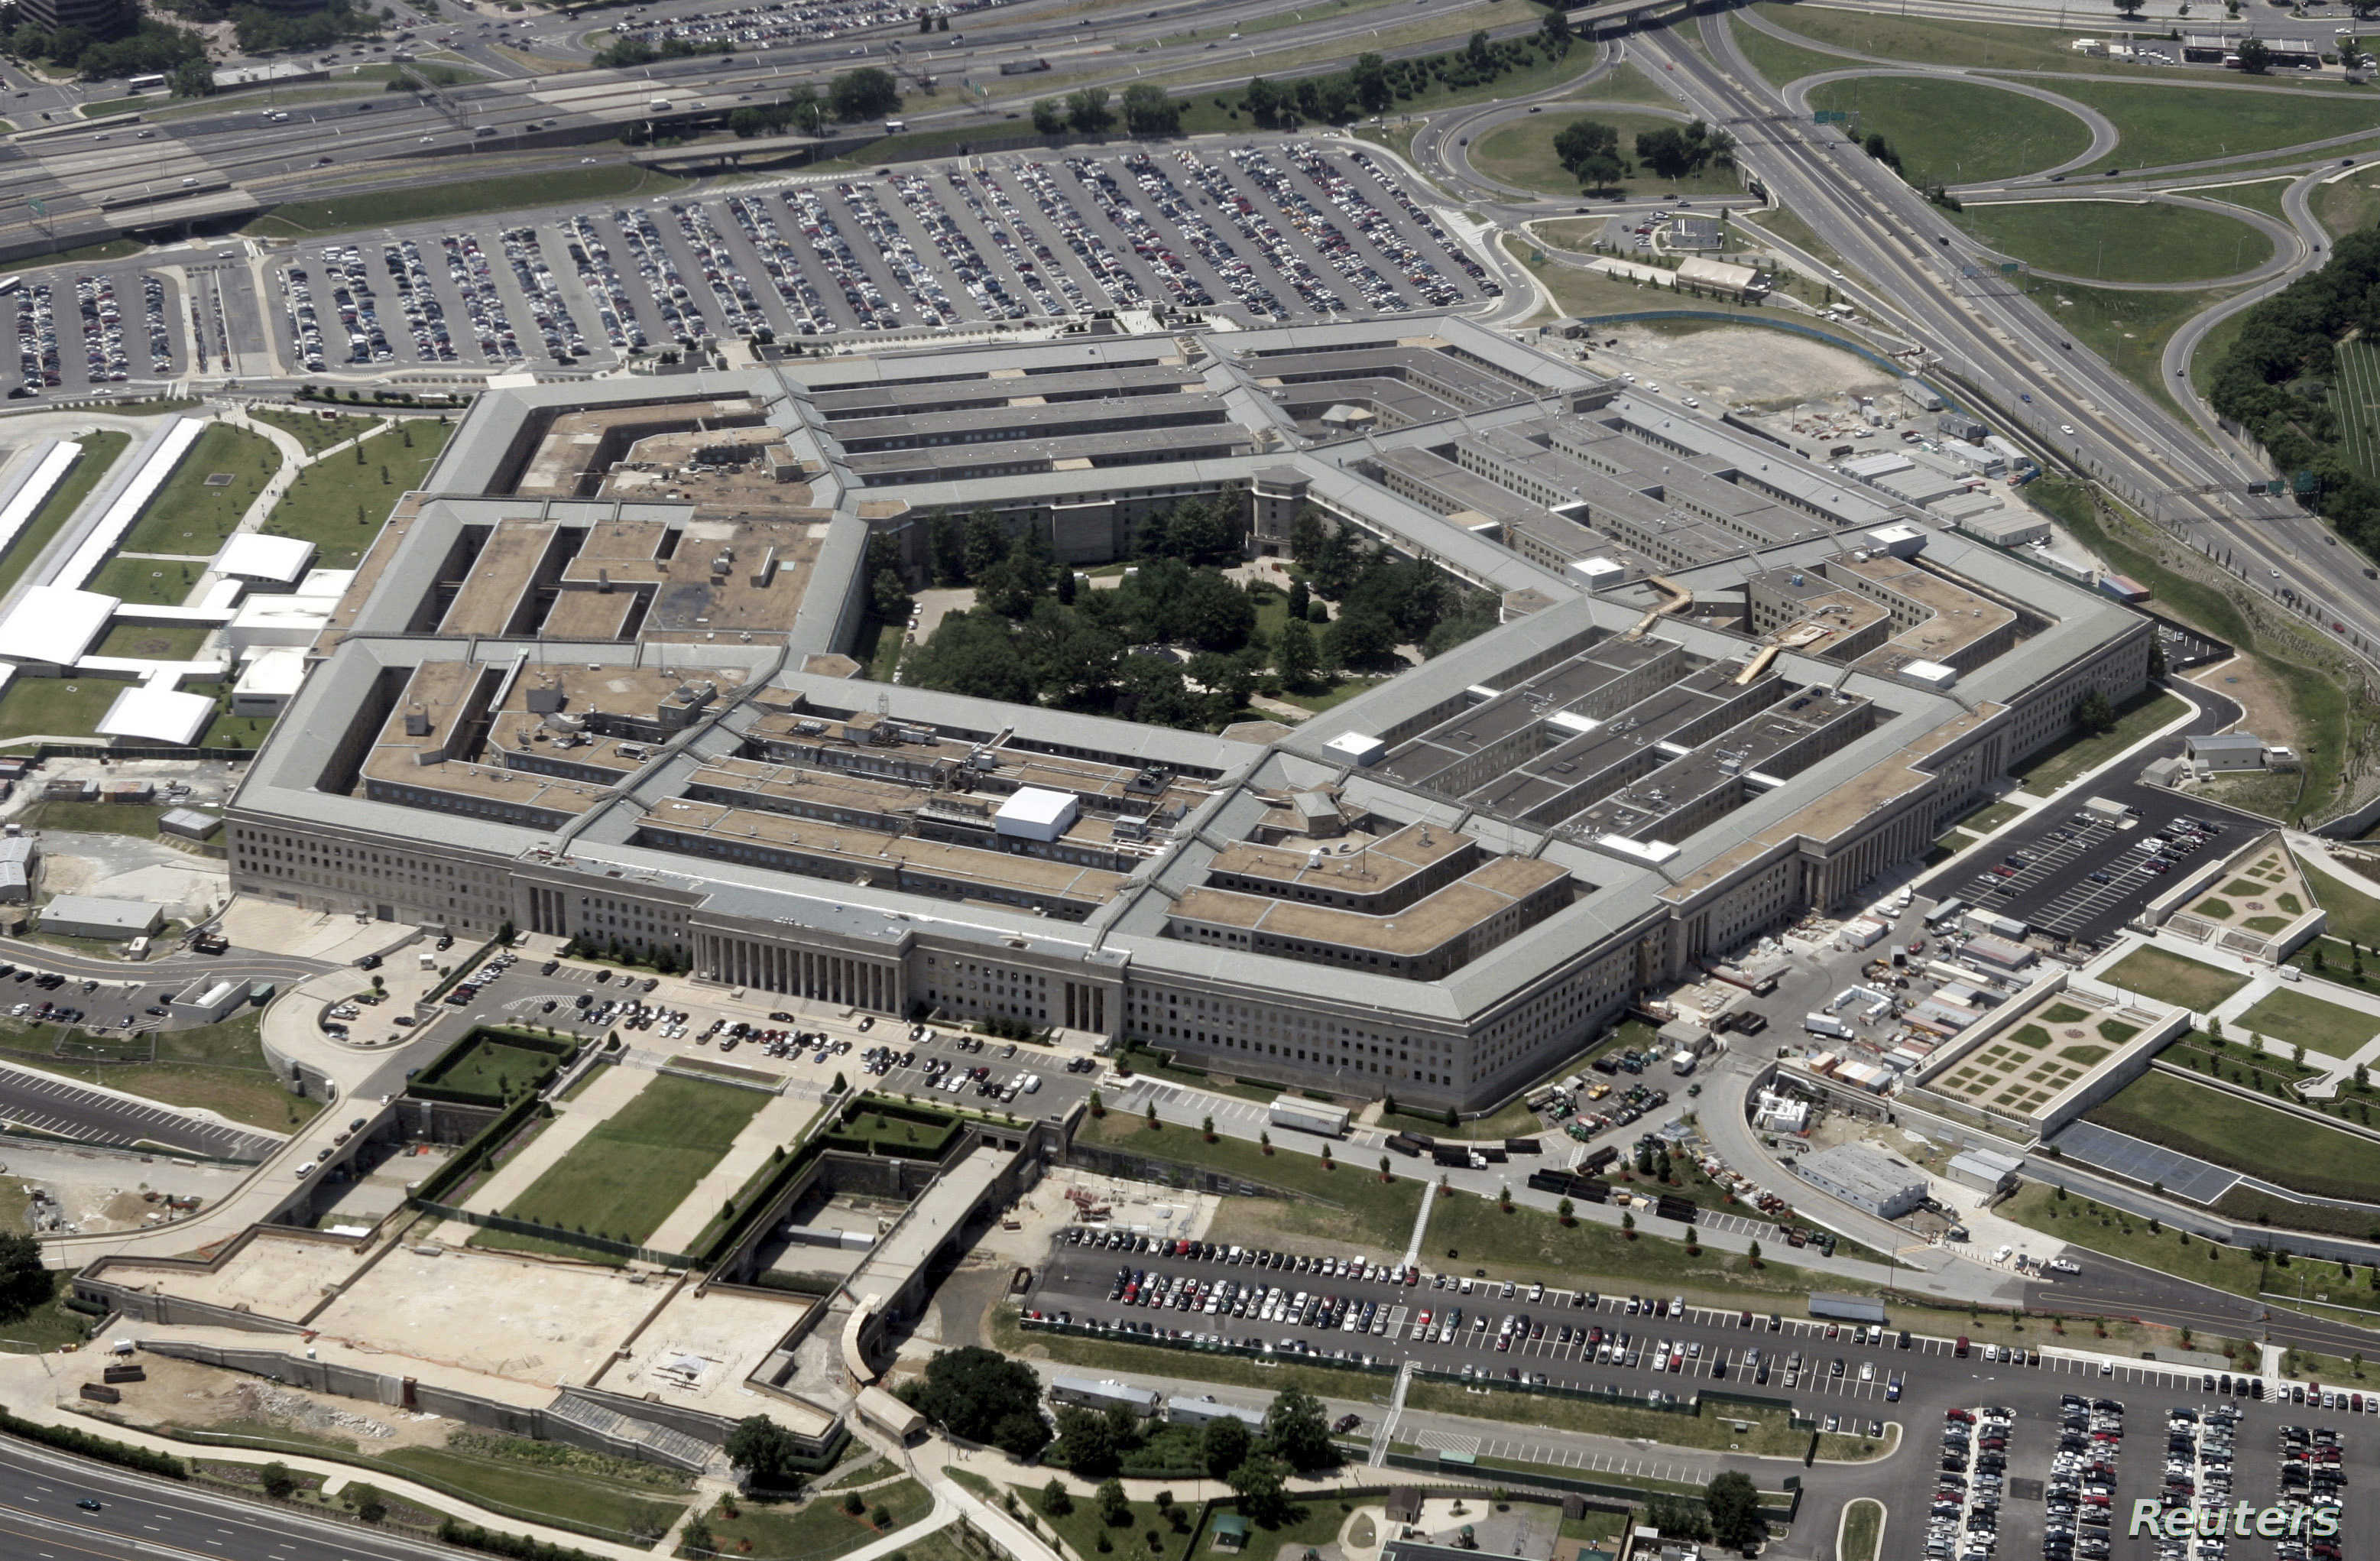 An aerial view of the Pentagon building in Washington, June 15, 2005. [U.S. Defense Secretary Donald Rumsfeld defended the Guantanamo prison against critics who want it closed by saying U.S. taxpayers have a big financial stake in it and no other facility could replace it at a Pentagon briefing on Tuesday.] - RTXNK0I